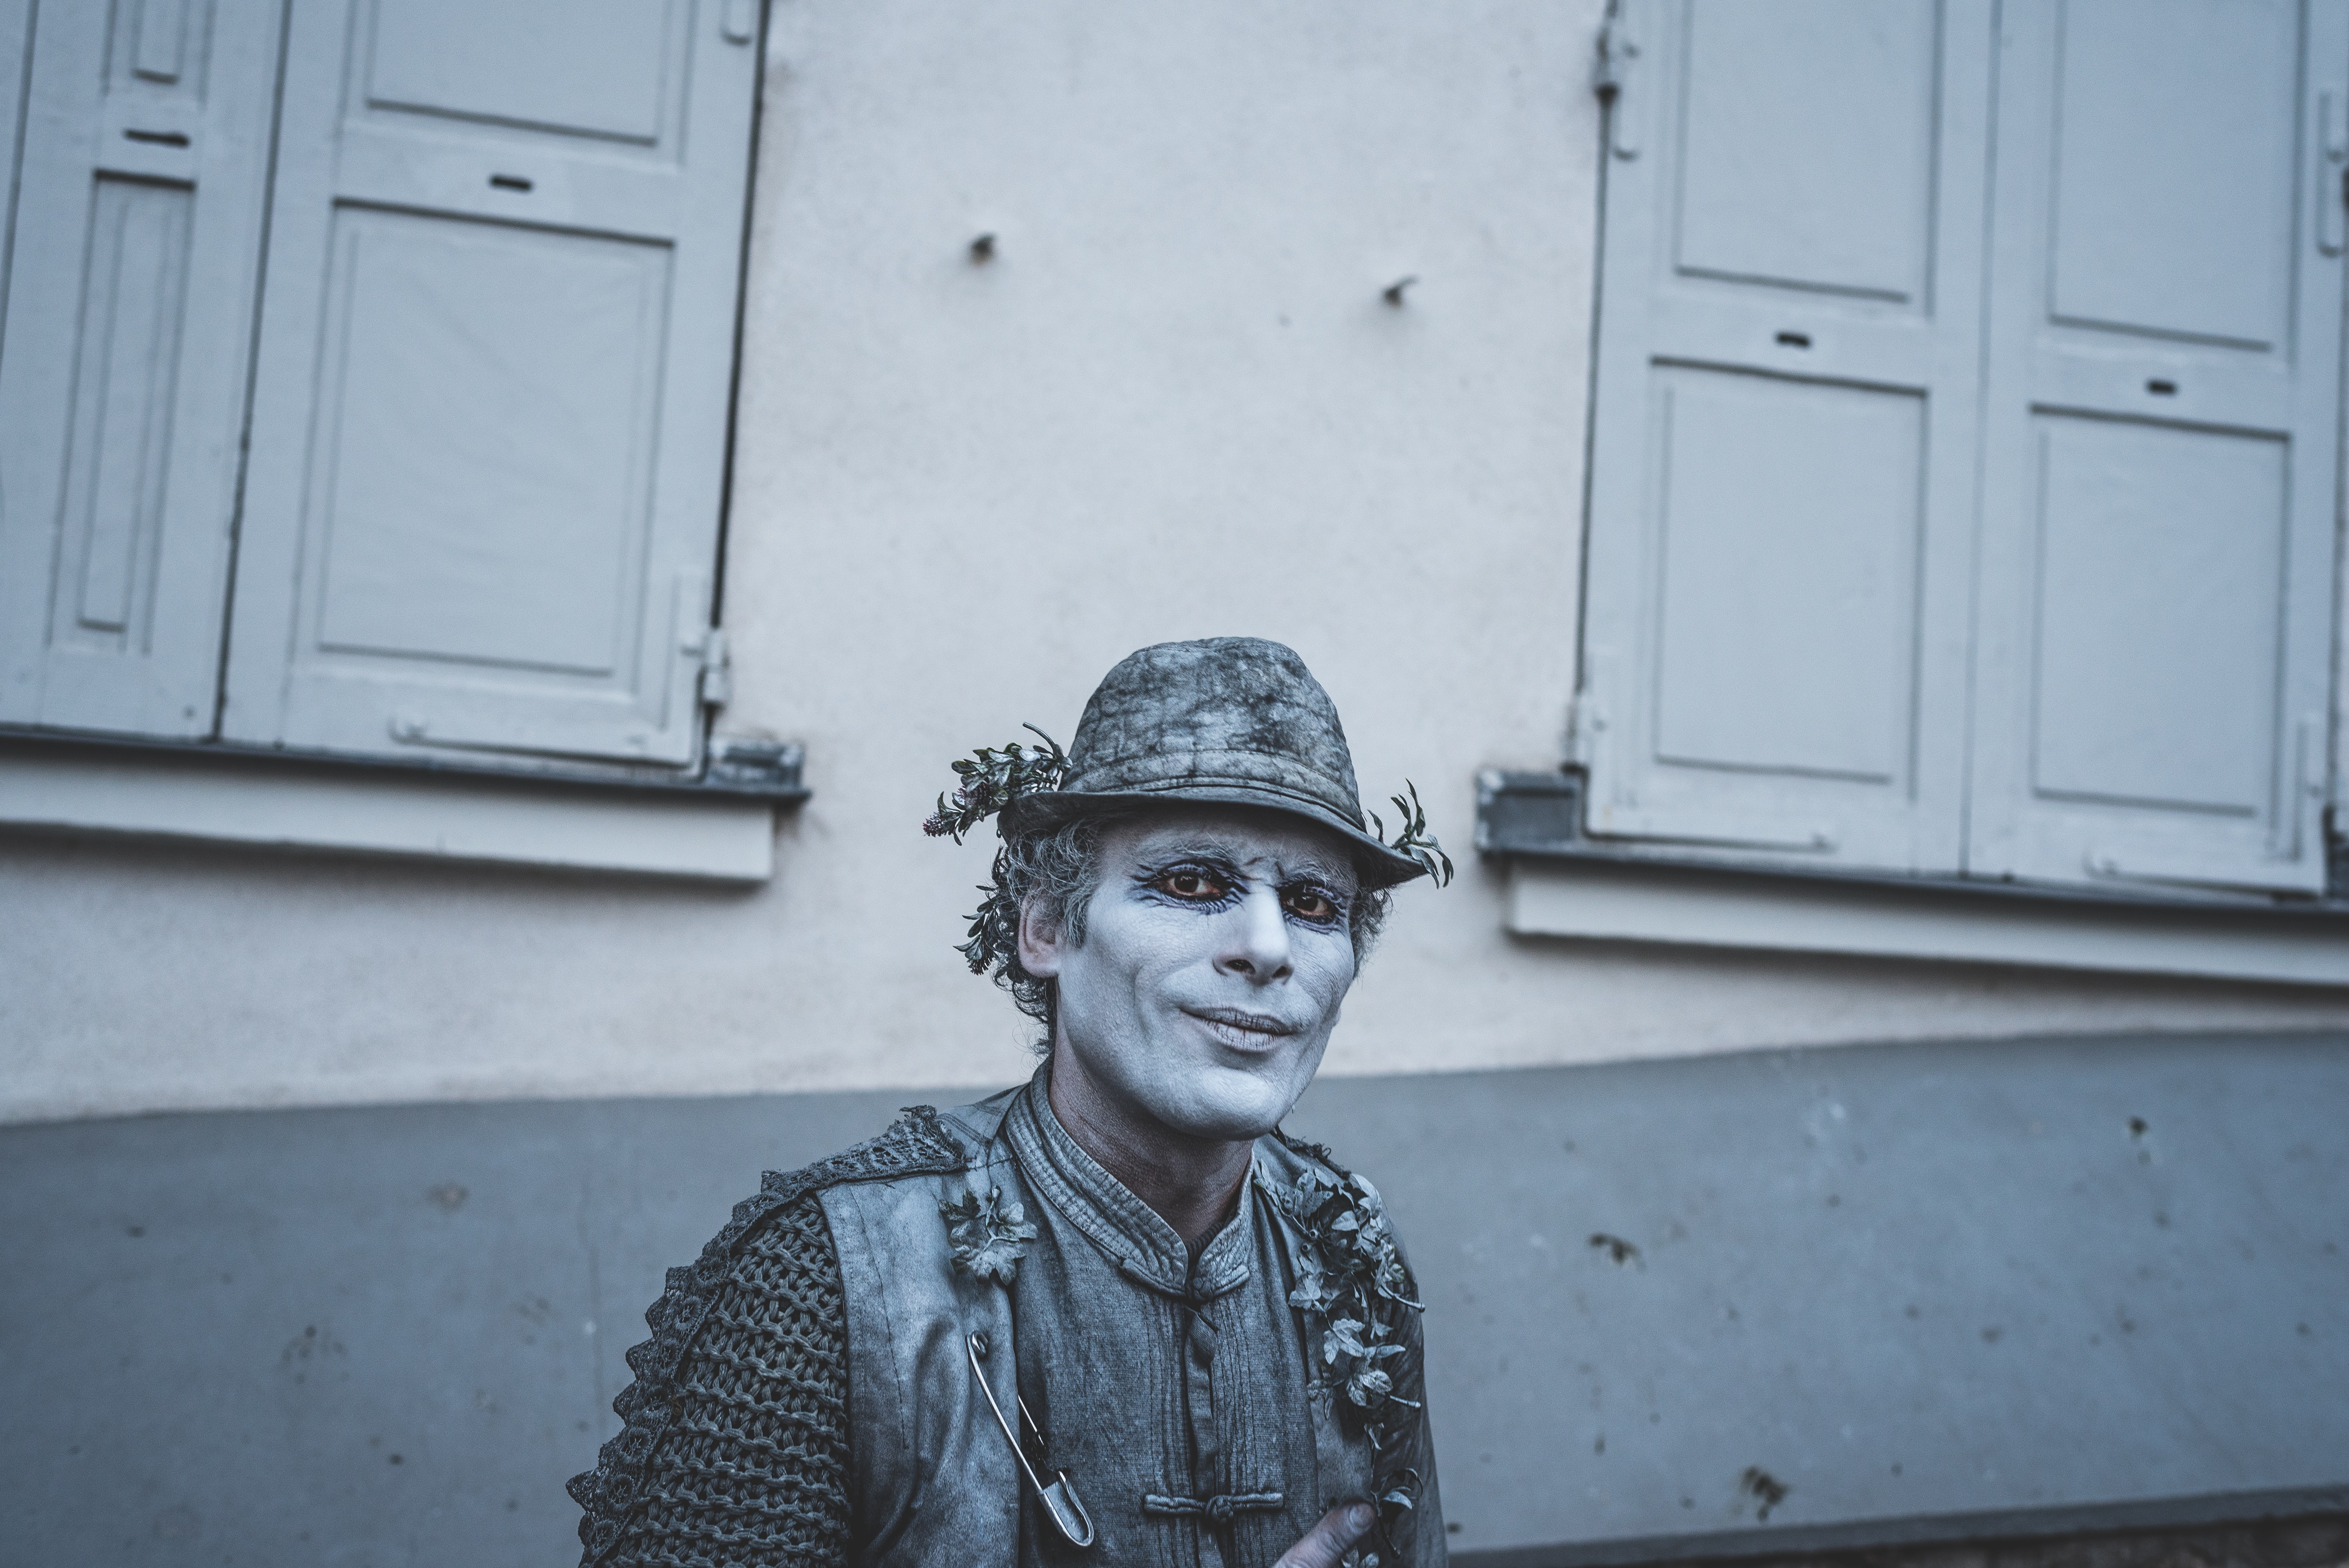 A street performer with a gray costume outfit and face paint.